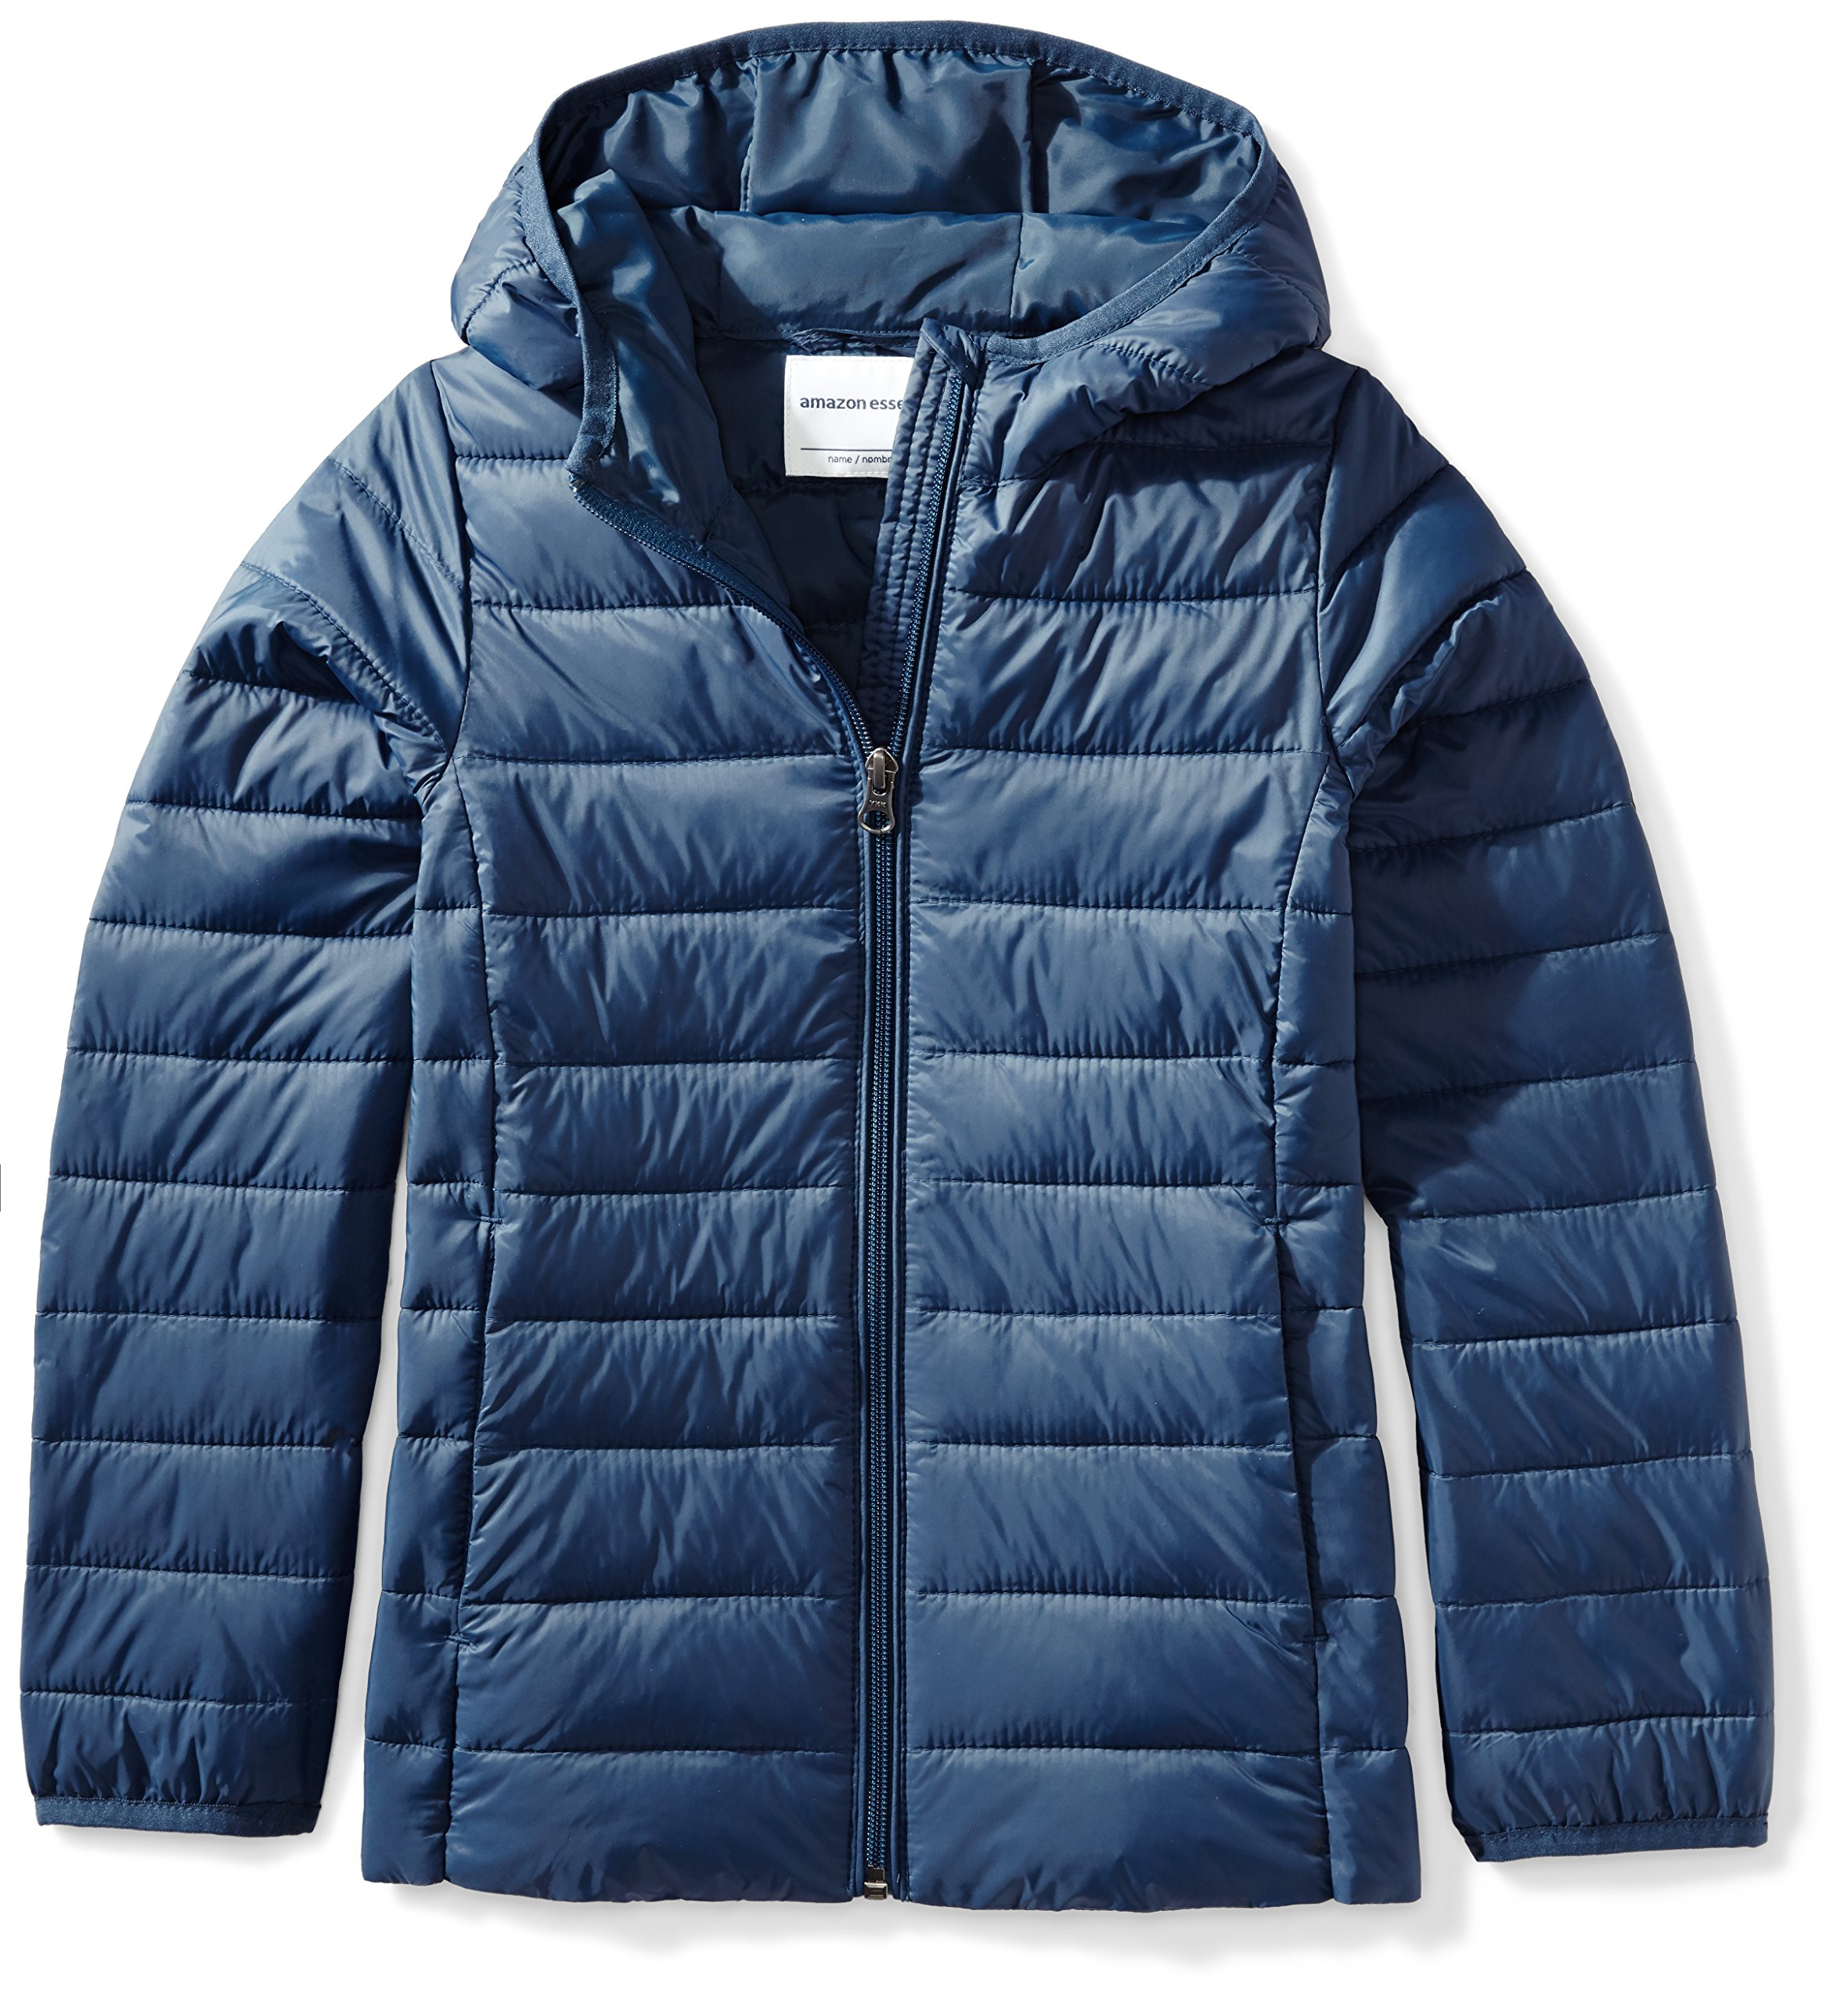 Amazon Essentials Girls' Lightweight Water-Resistant Packable Hooded Puffer Jacket, Navy, Large